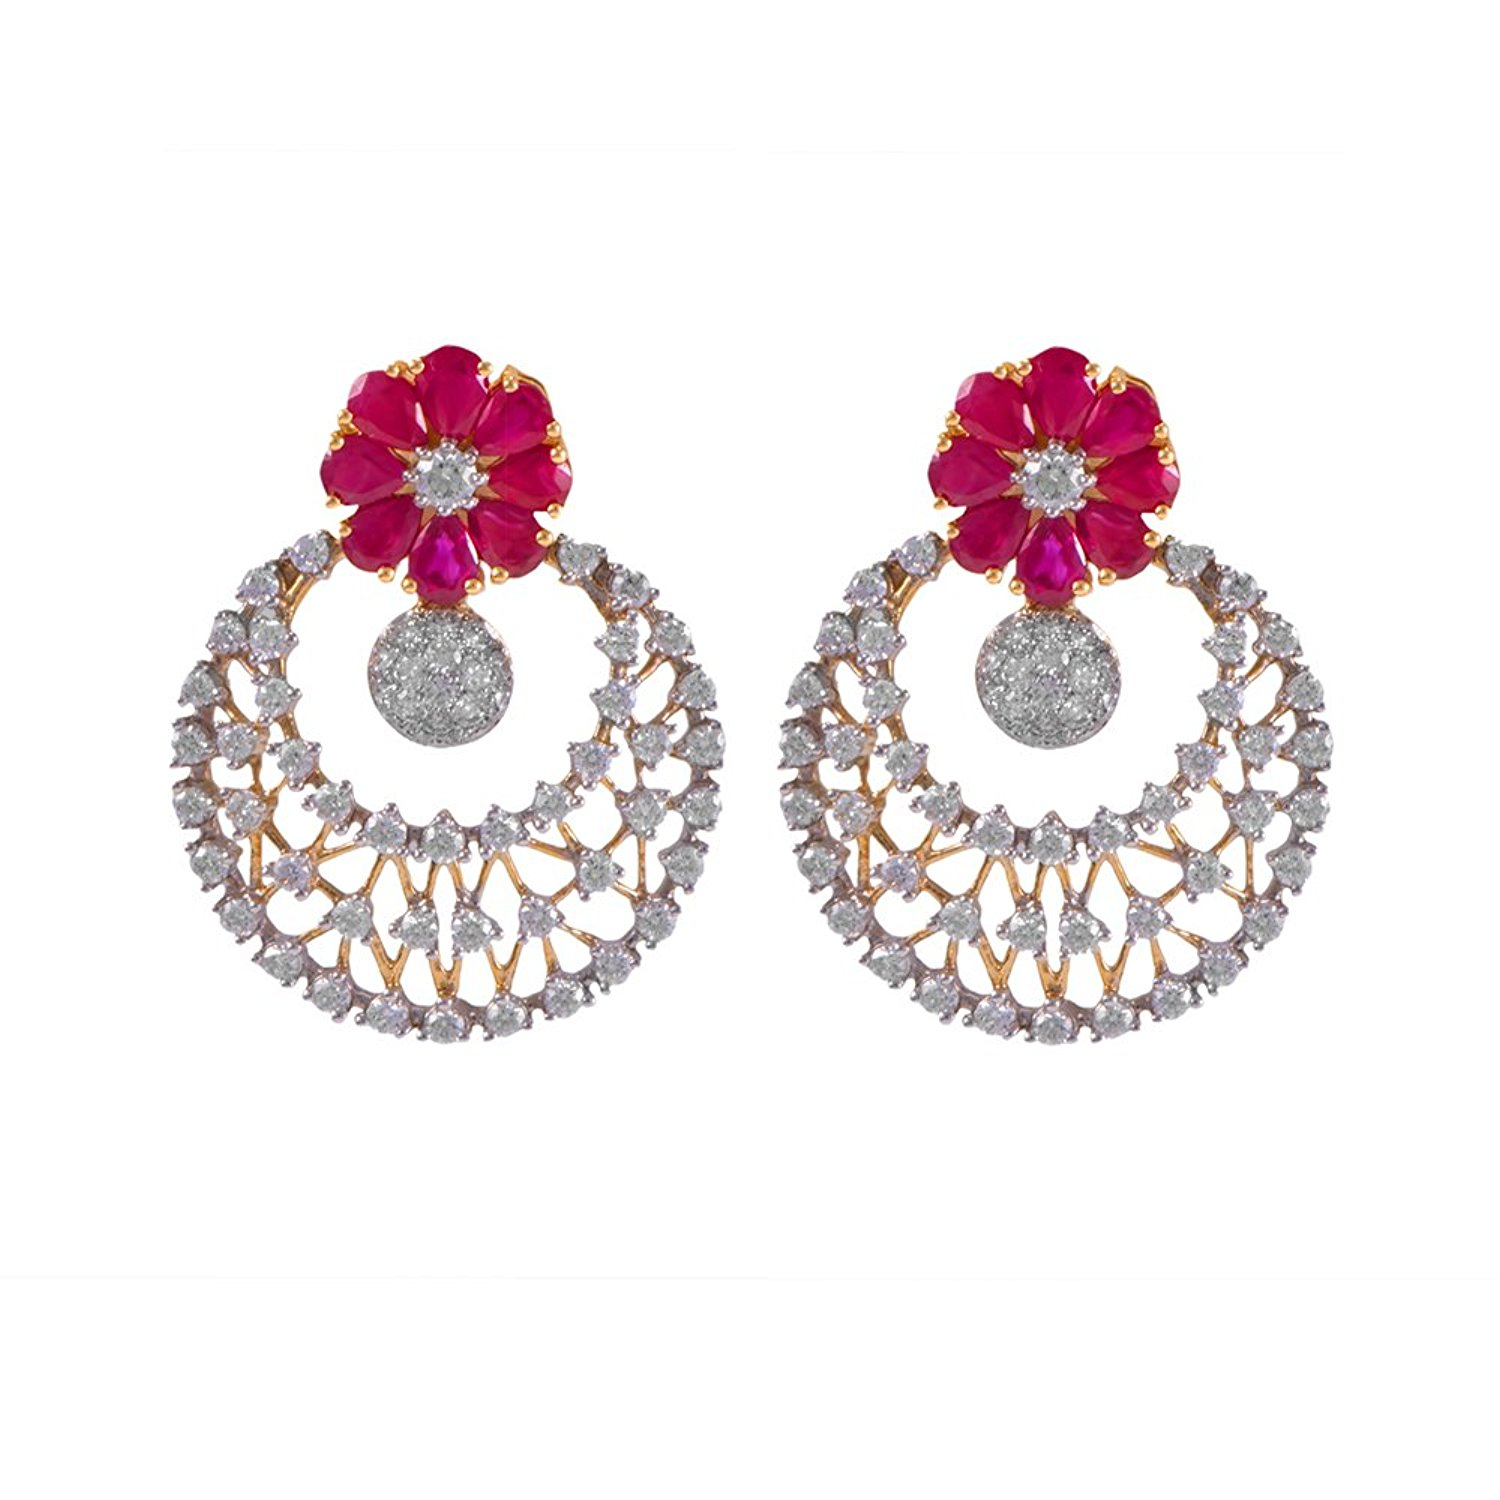 Earrings Models In Joyalukkas Joyalukkas The World S